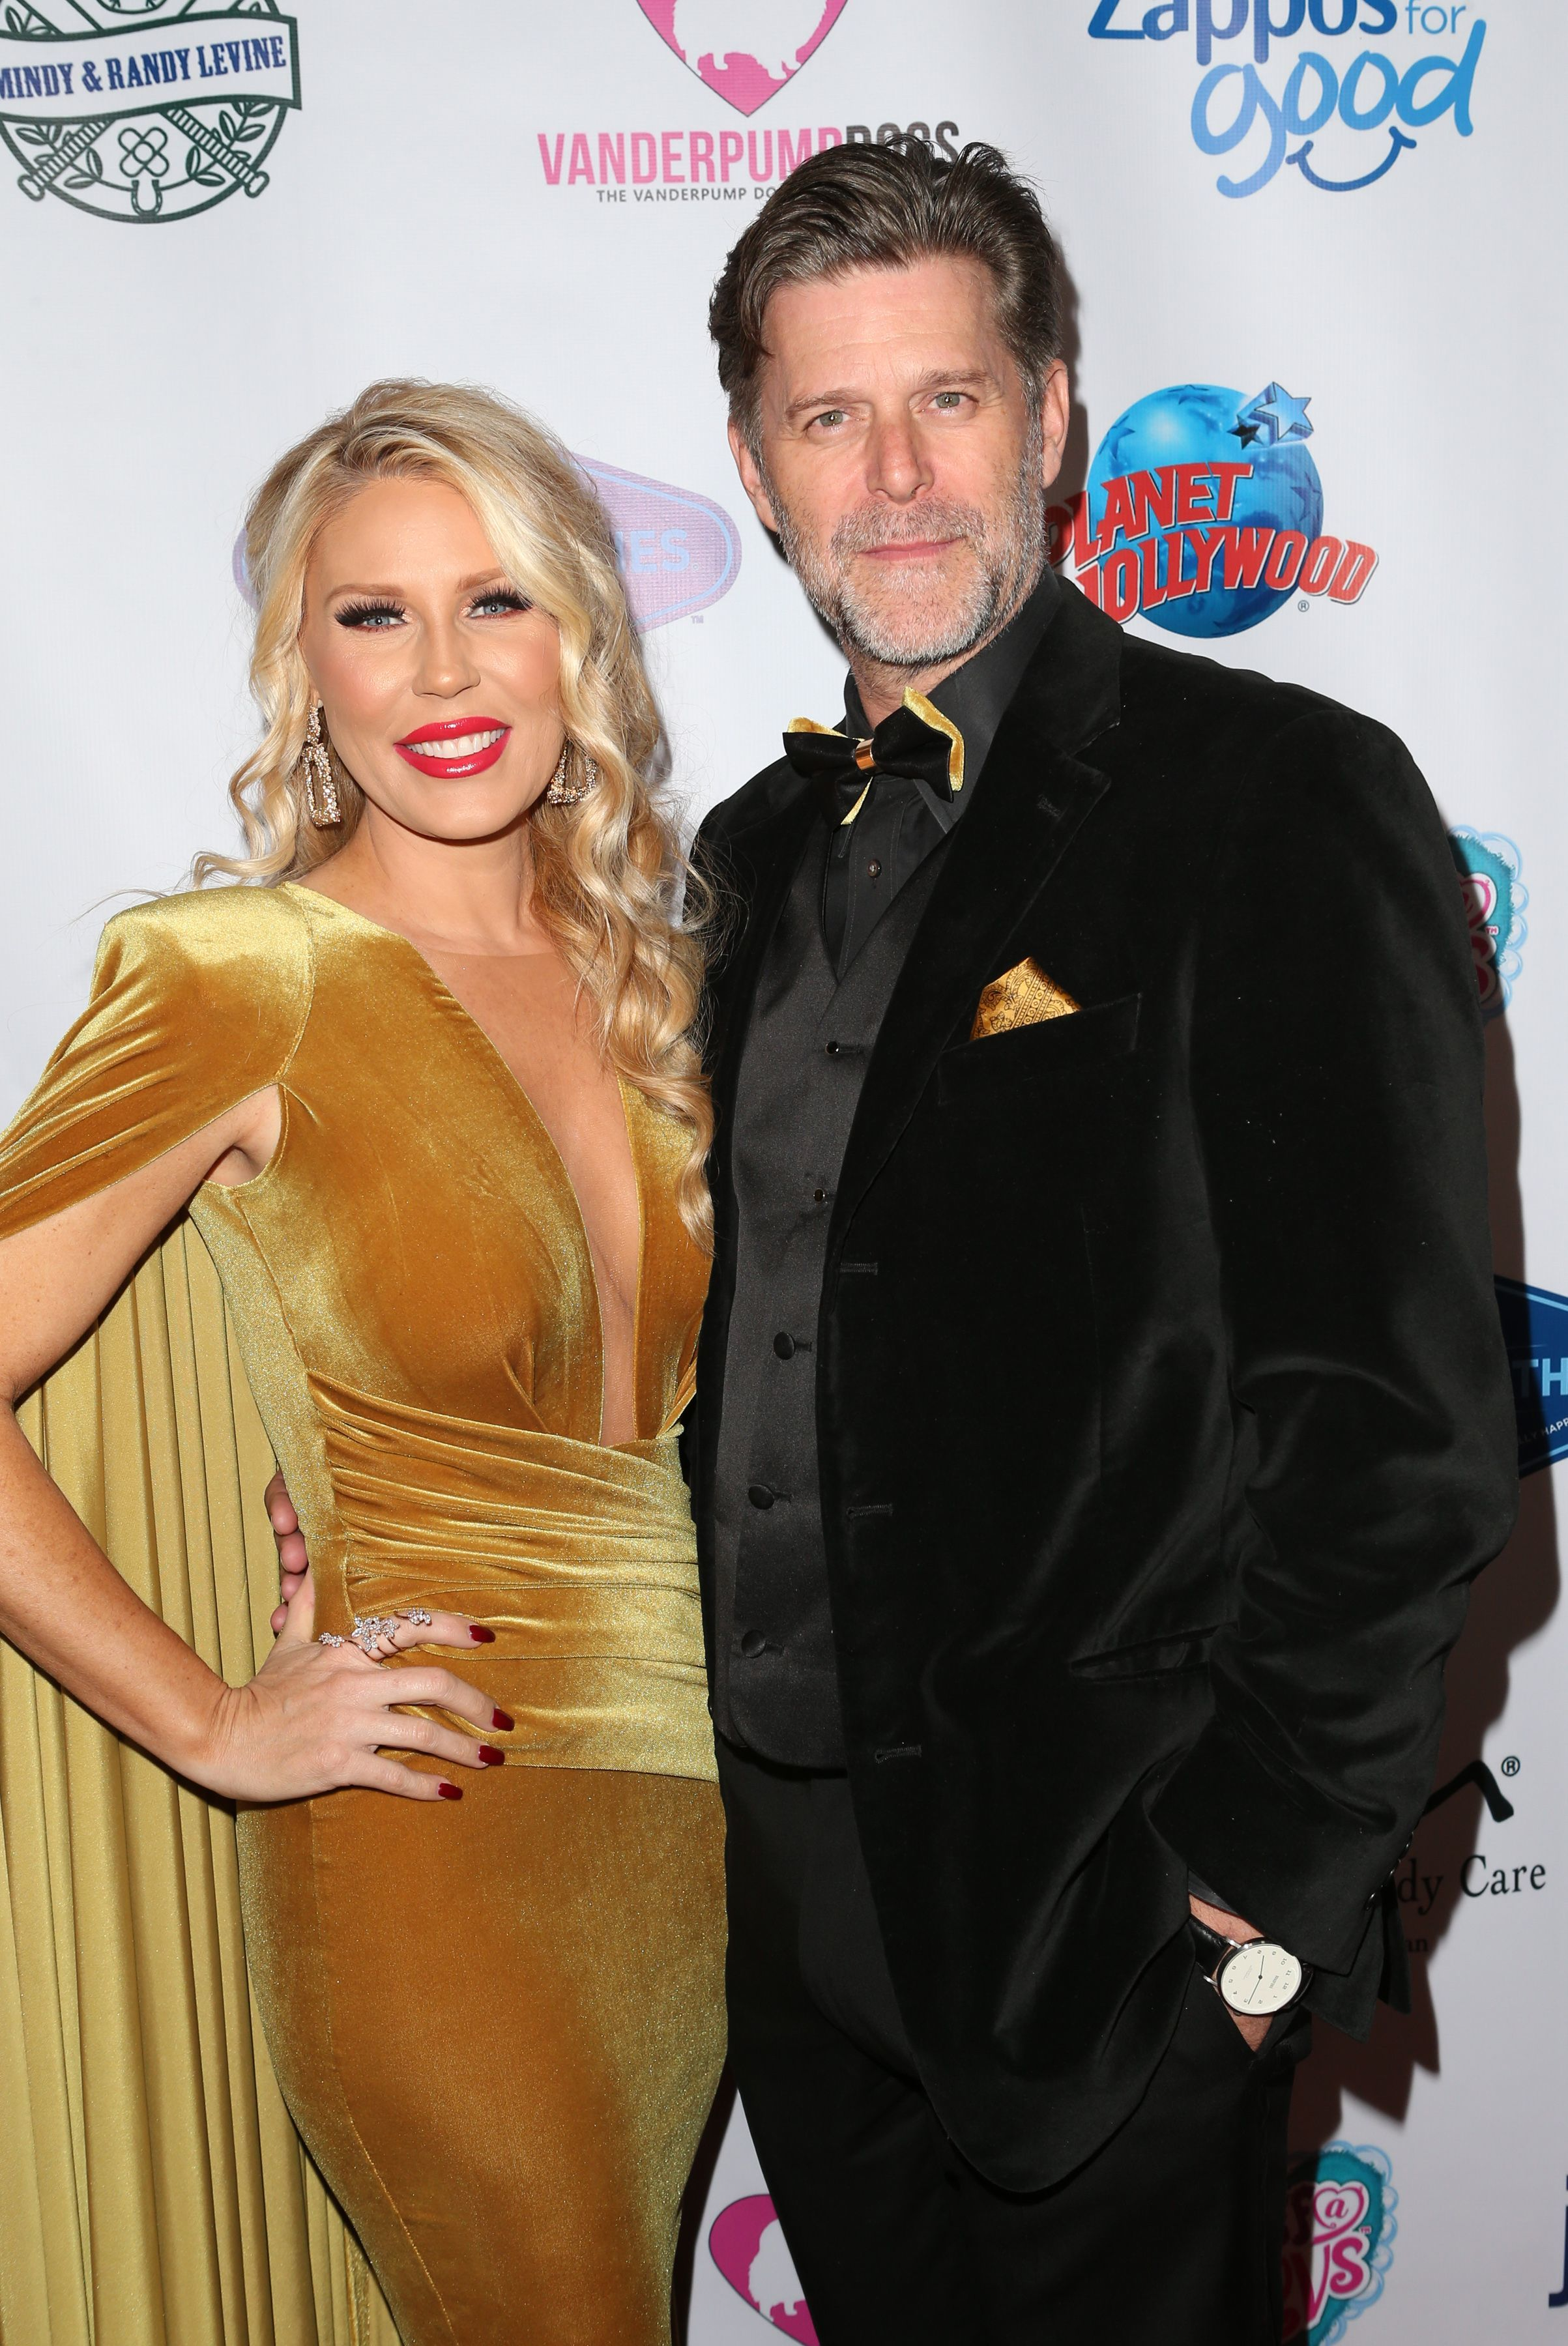 Gretchen Rossi and Slade Smiley attend the Third Annual Vanderpump Dog Foundation Gala in Los Angeles on Nov. 15, 2018.